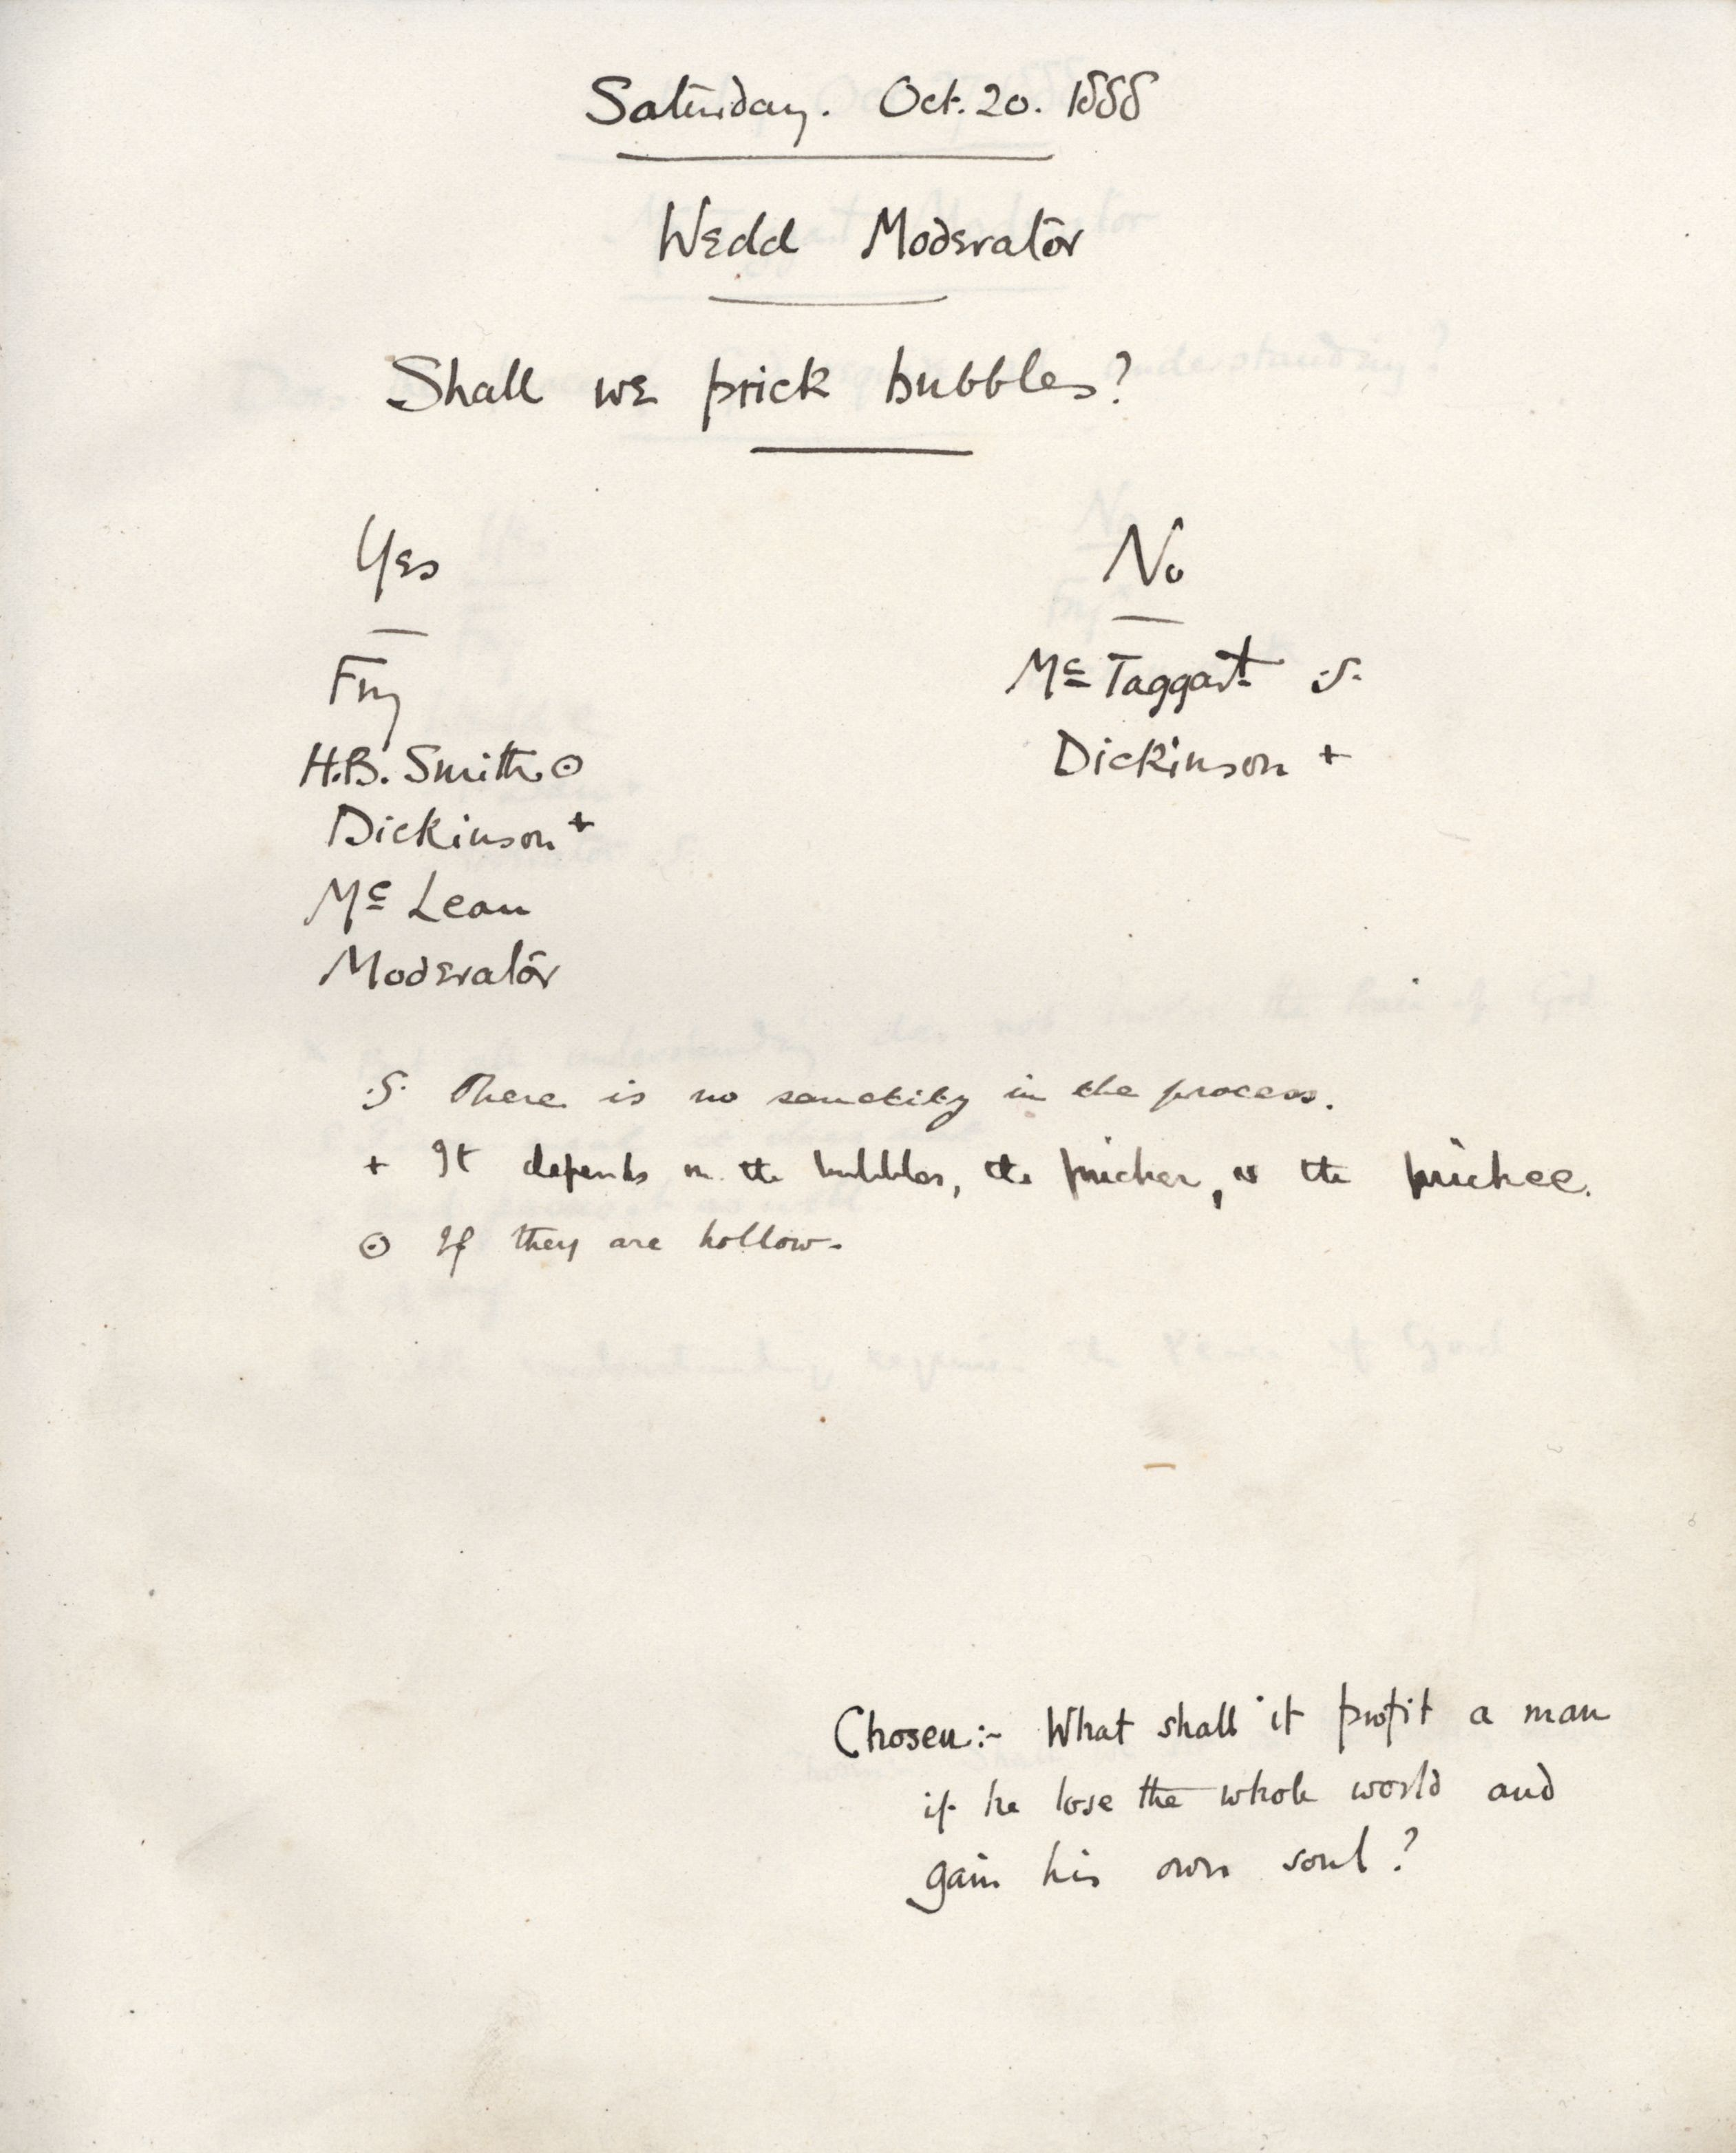 Minutes of a meeting in which Wedd asked 'Shall we prick bubbles?' [KCAS/39/1/11, 20 October 1888]